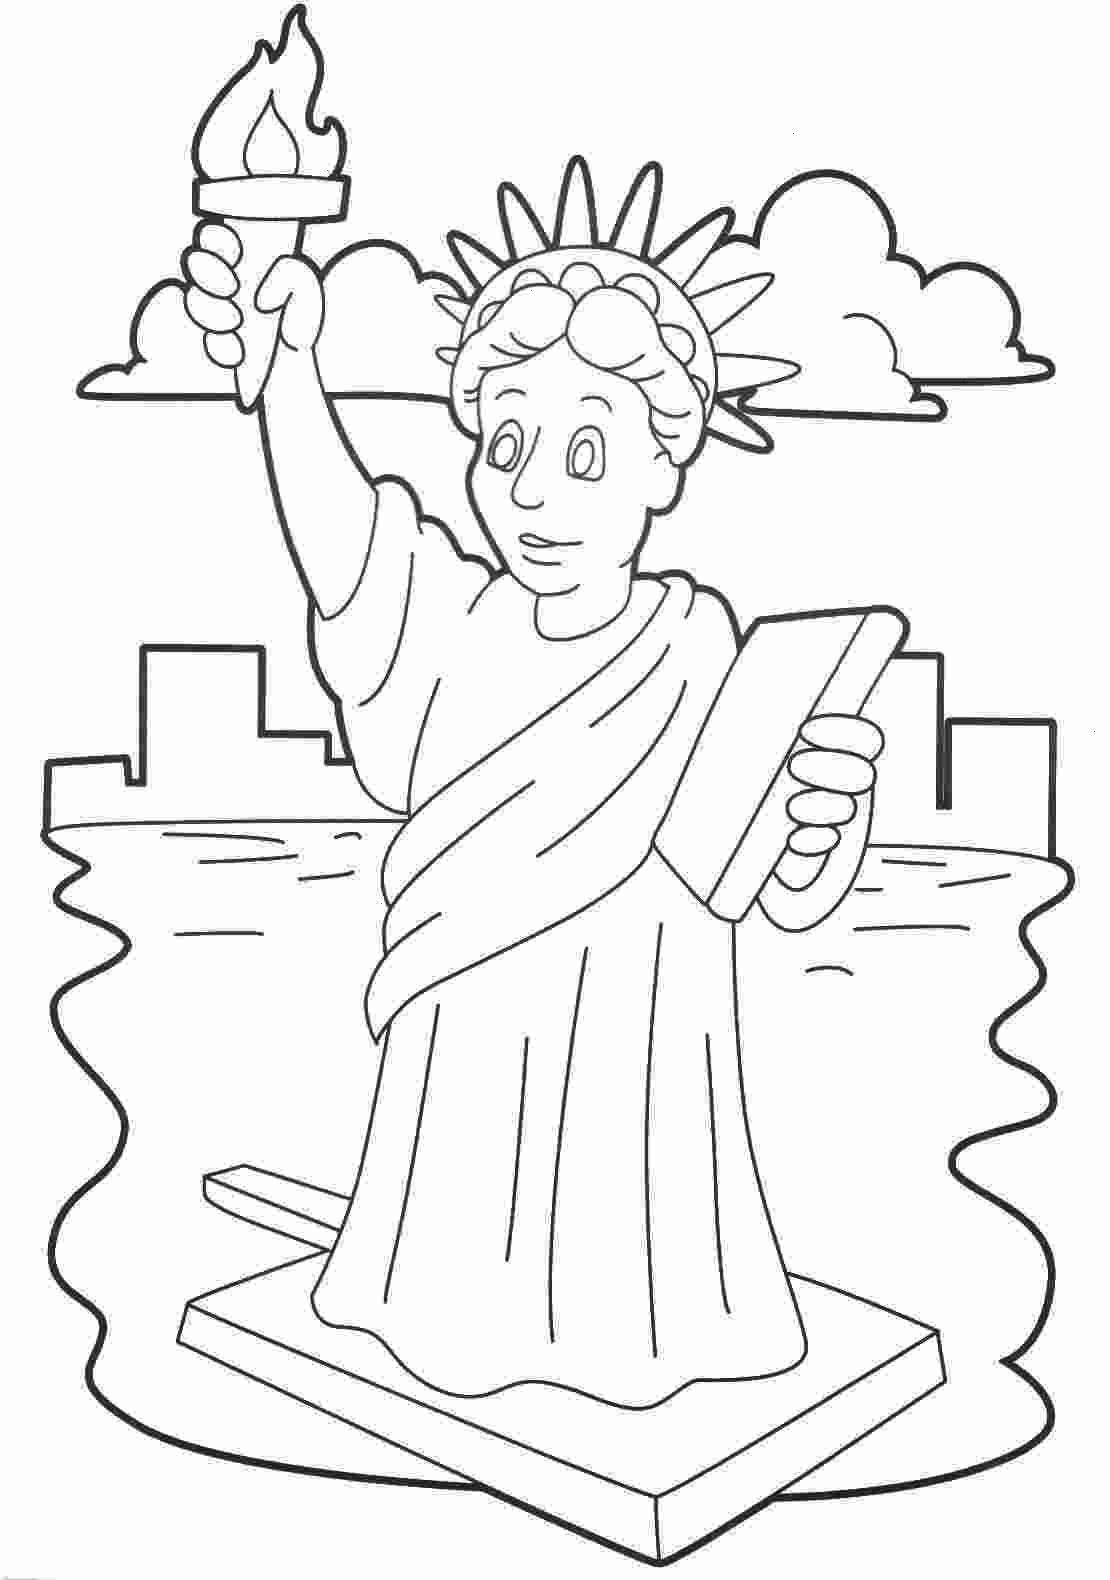 liberty coloring pages Cute Coloring Pages Statute of liberty coloring pages  More than 100000 Amazing Coloring sheets  Cute Coloring Pages Statute of liberty coloring pa...